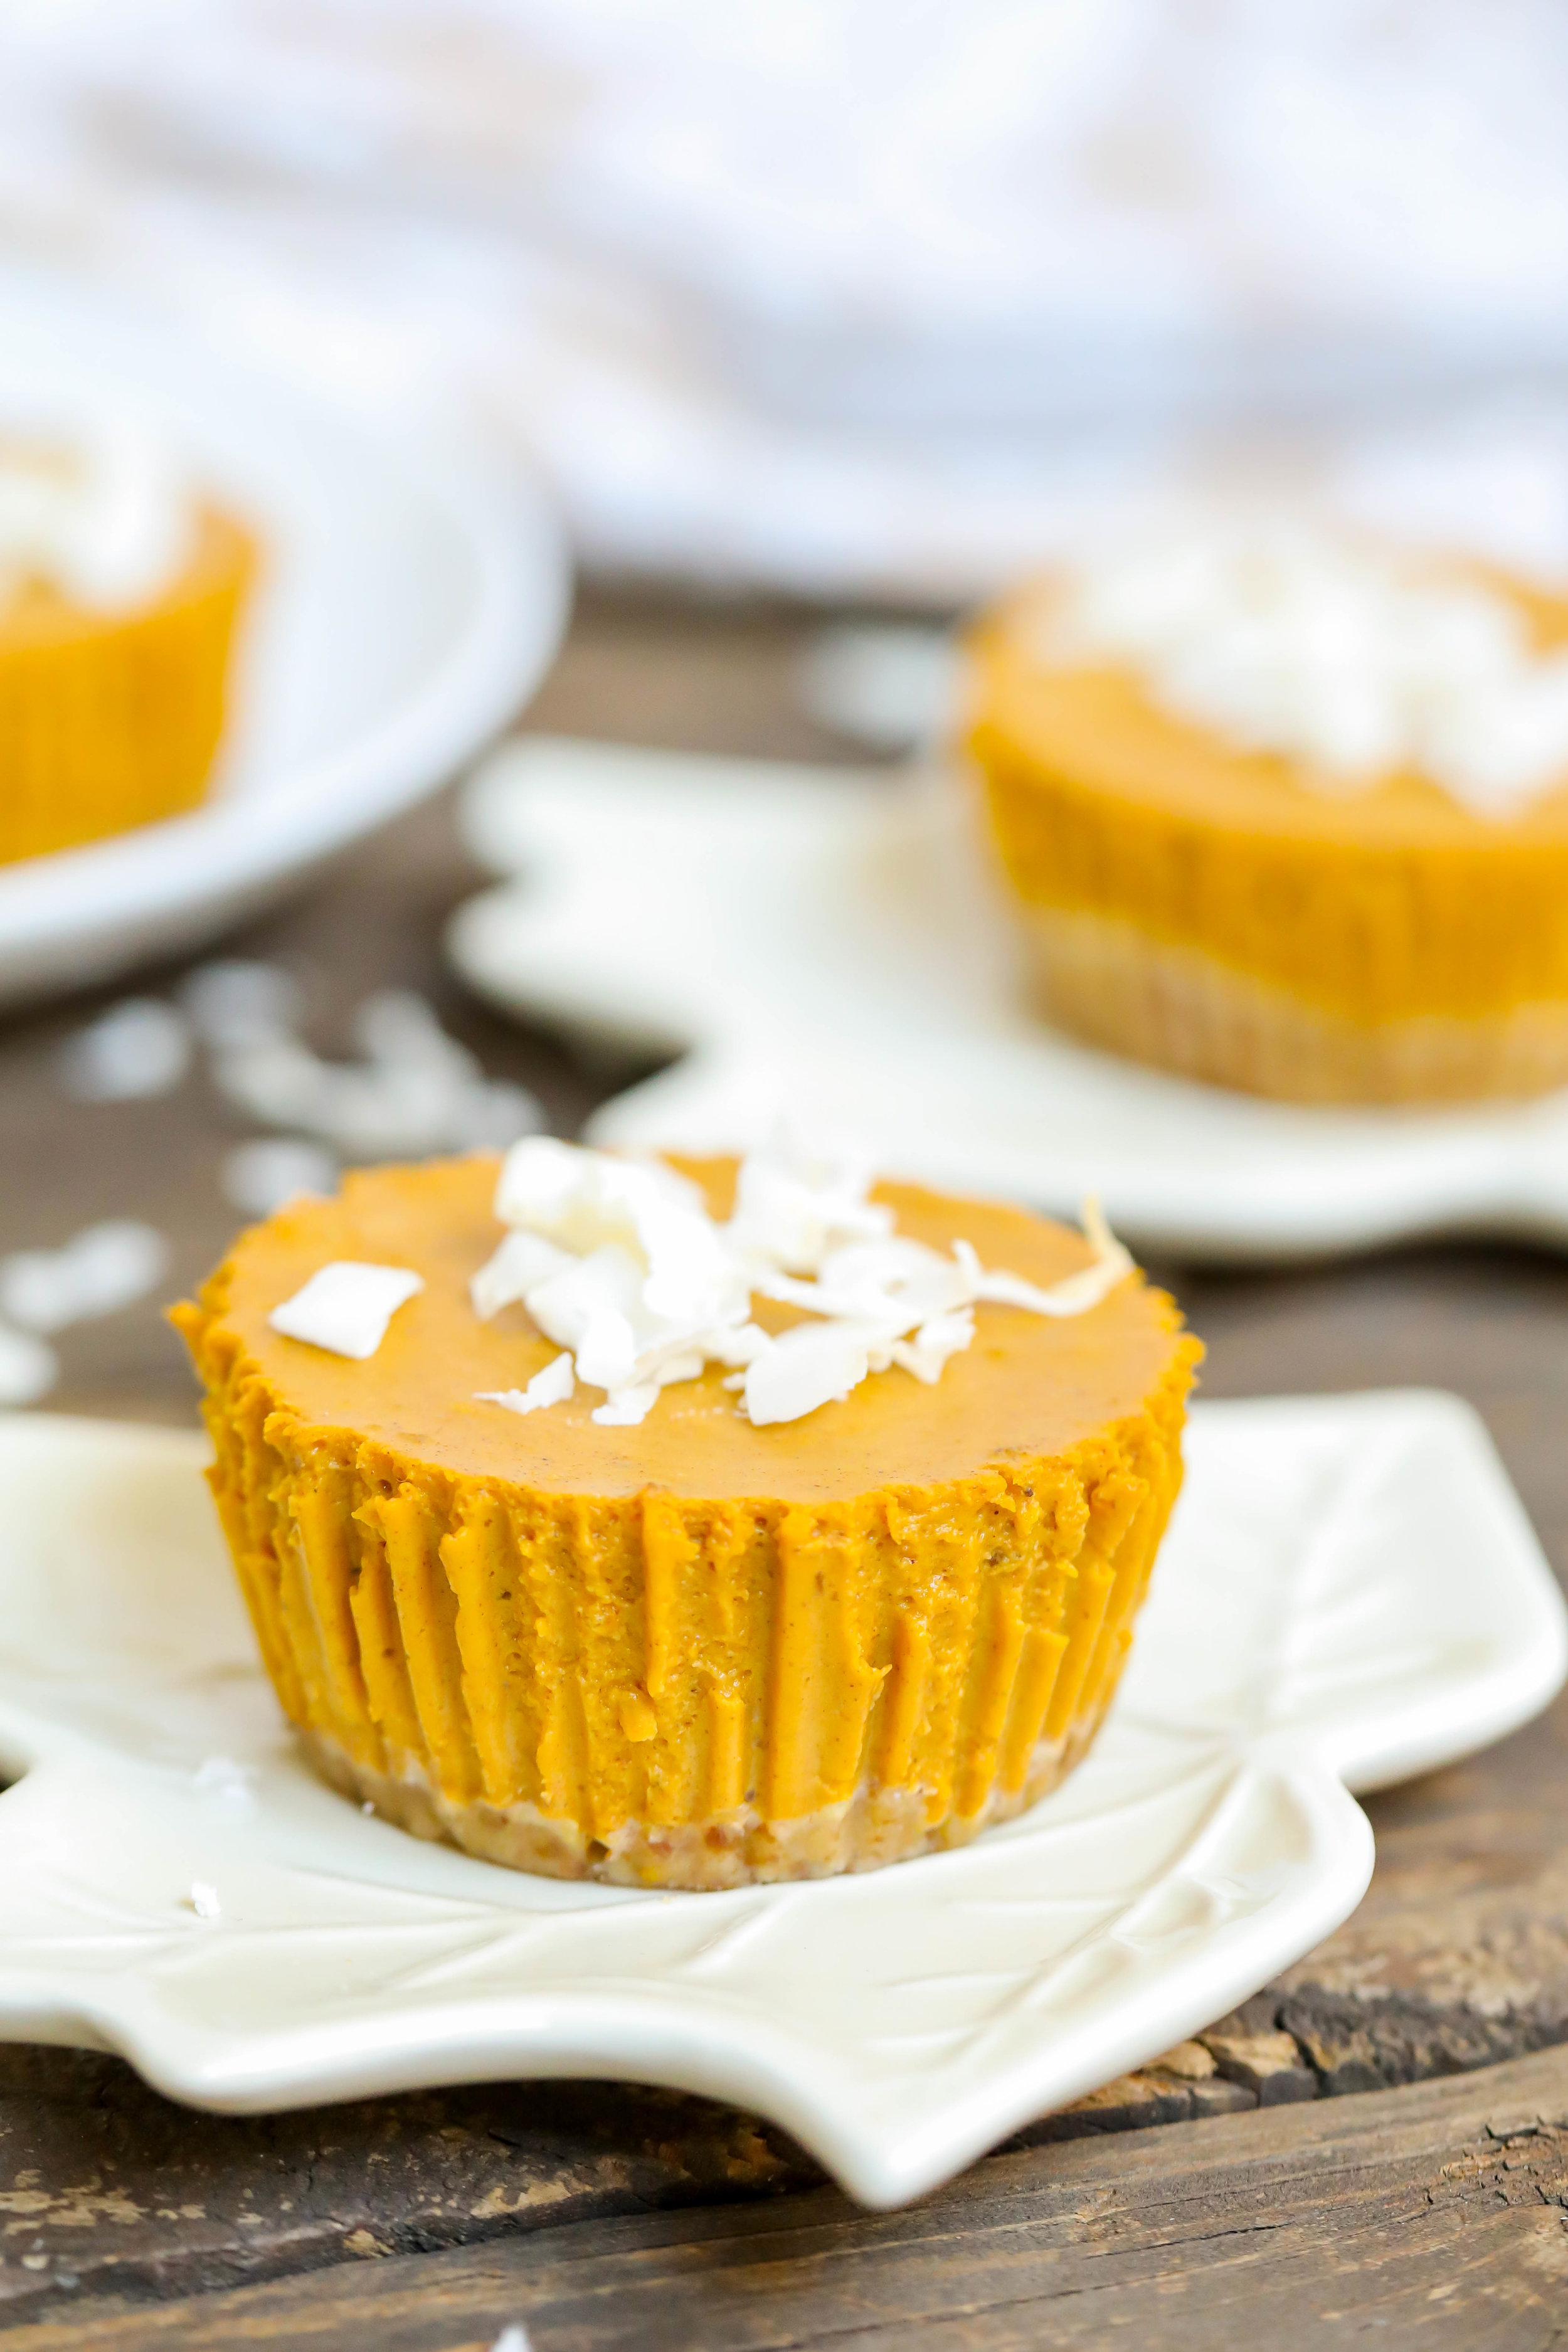 Delicious & Nutritious Mini Pumpkin Pies